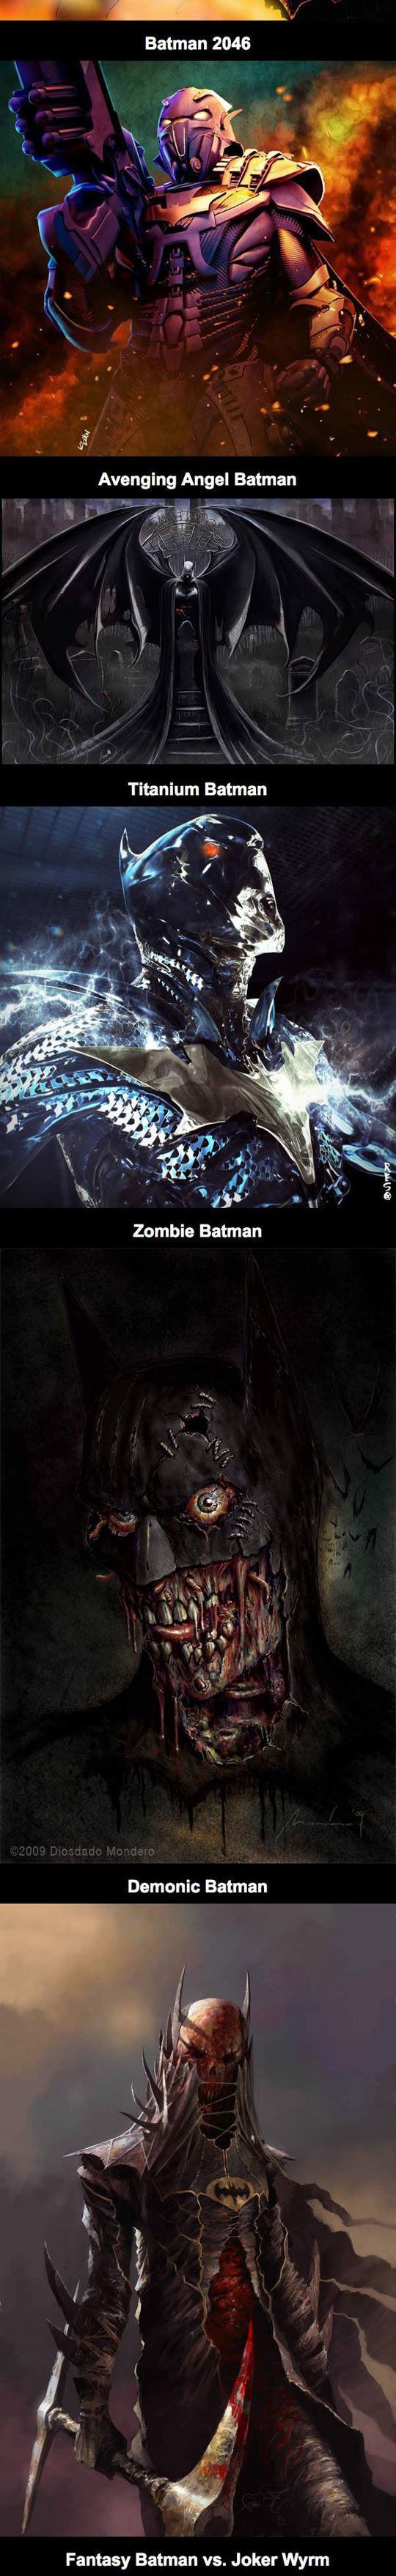 funny-Batman-illustrations-medieval-future-ages-zombie